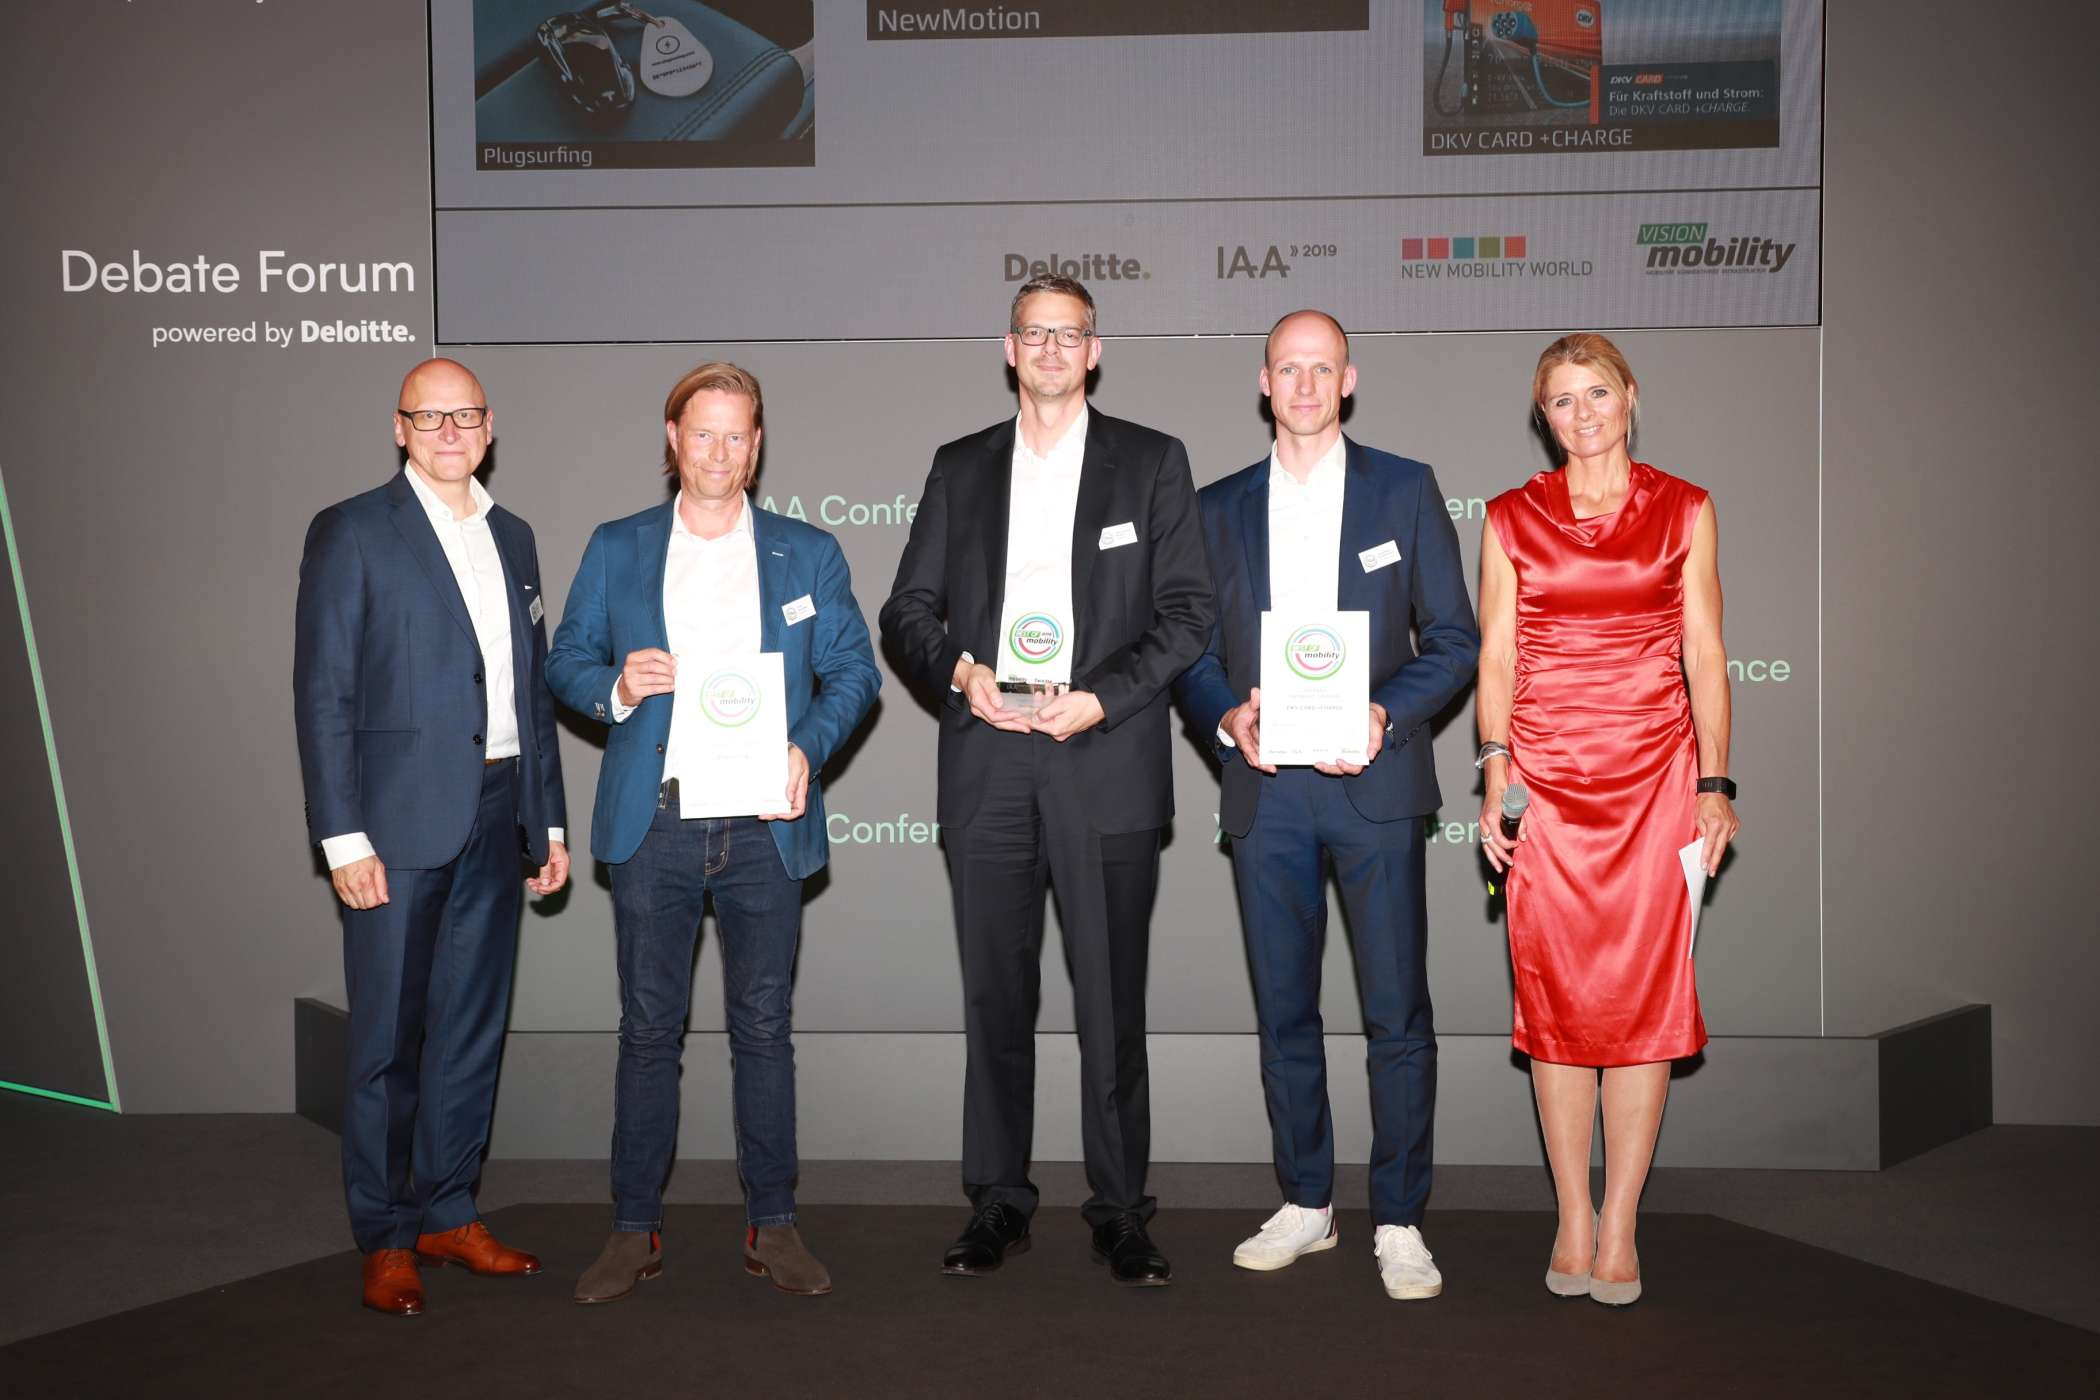 Payment Systems: Dr. Thomas Schiller, Partner Automotive Lead Deloitte (li.) und Moderatorin Maren Braun (re.) mit Frank Lauenstein, Business Developement DACH, Plugsurfing (2.v.l.) (Platz 2), Klaus Schmidt-Dannert, Country Manager, NewMotion (3.v.l) (Platz1), und Christoph Schäckermann, Head of Product Management eMobility Services, DKV (4.v.l.) (Platz 3). | Foto: H. Weipert